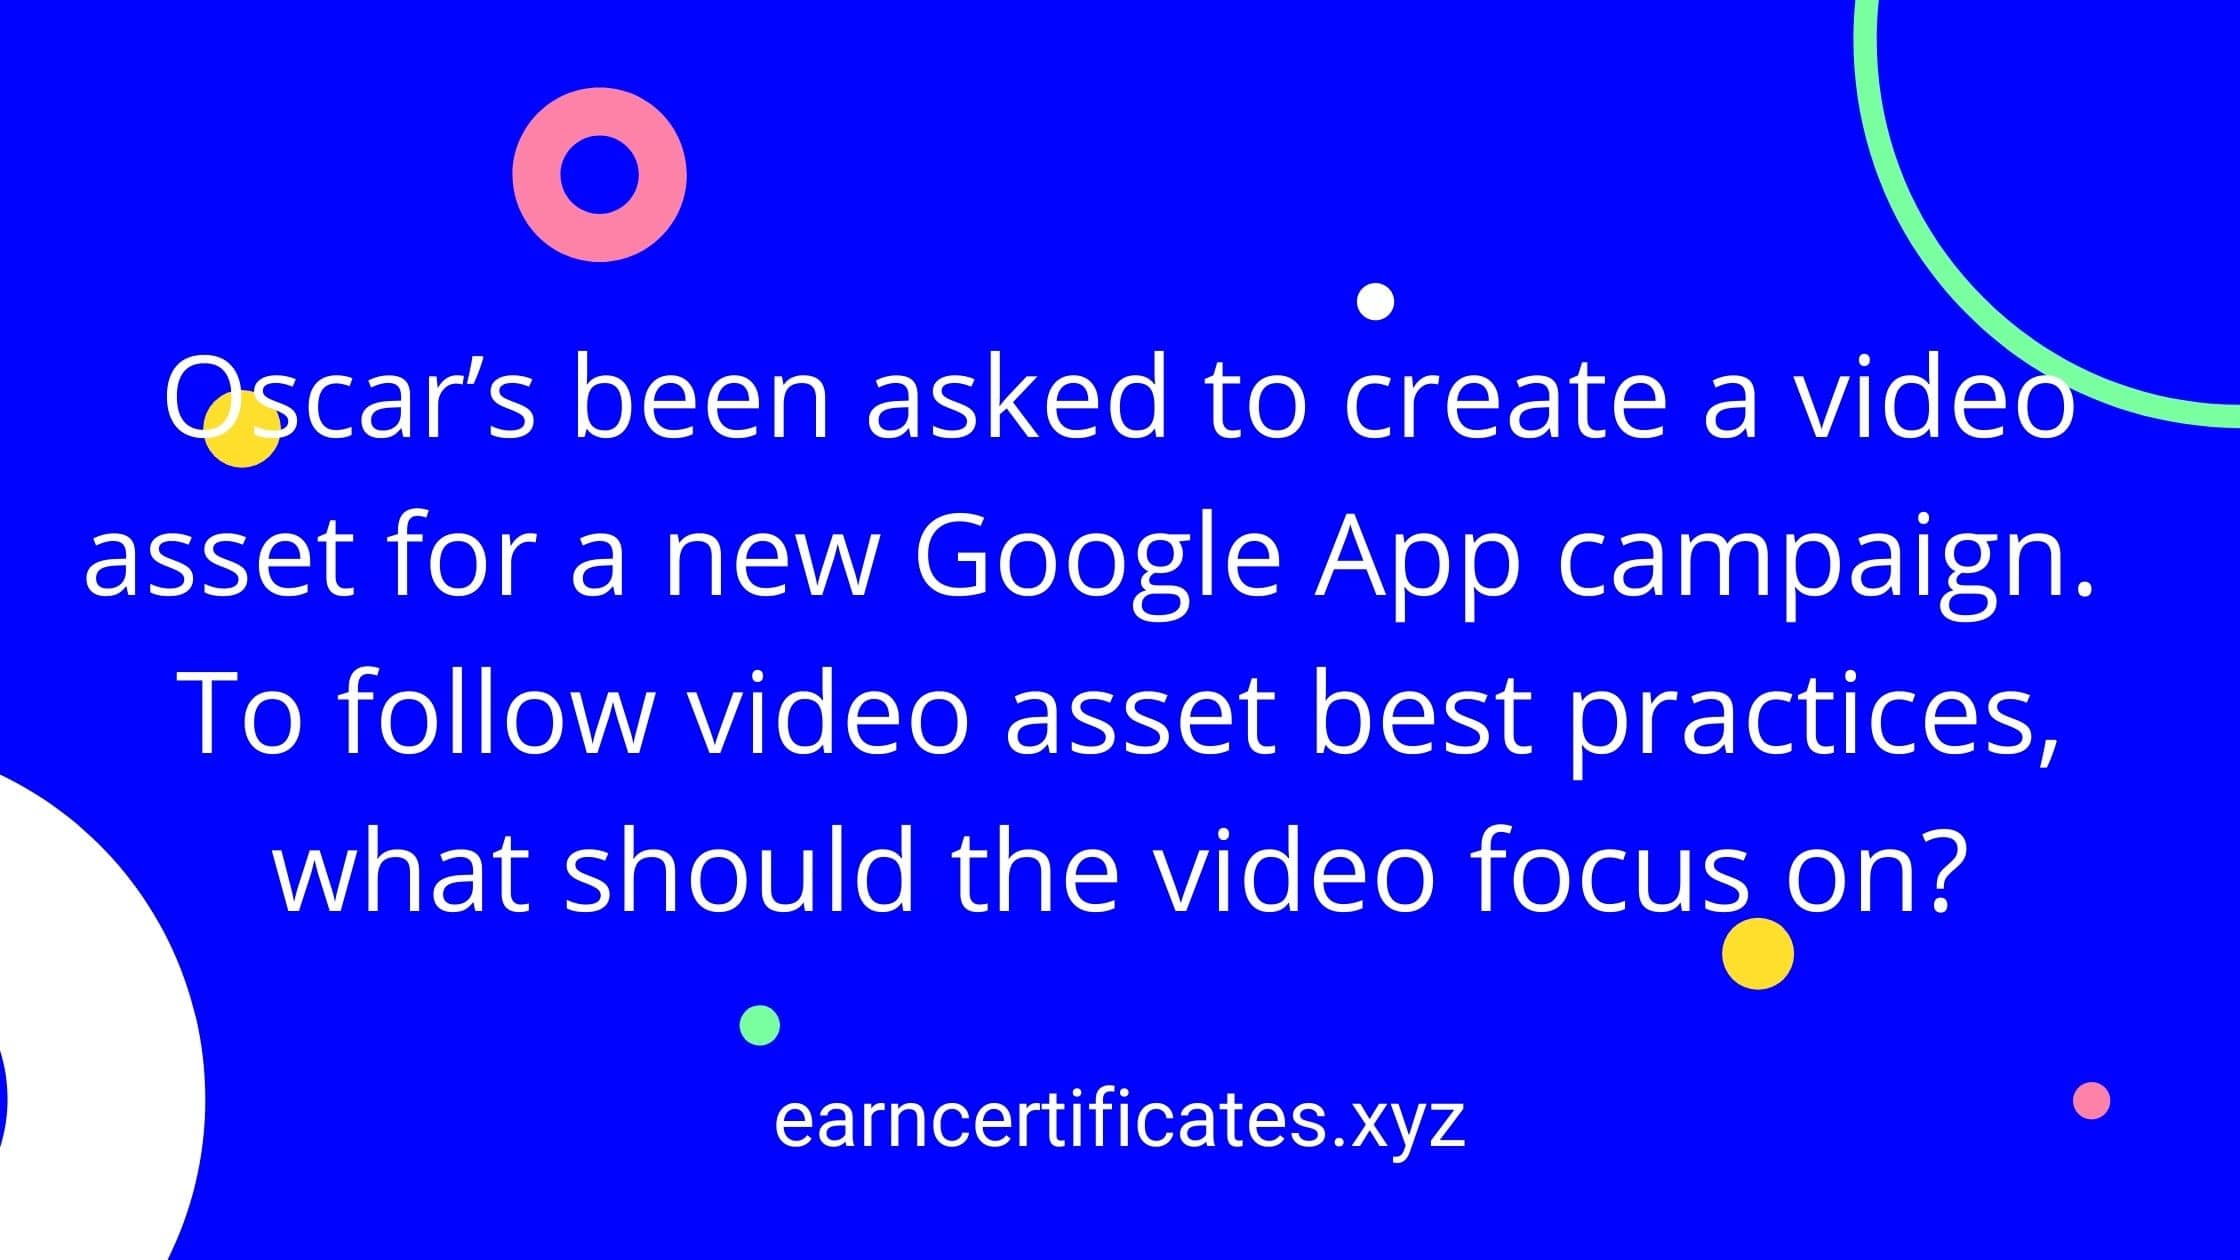 Oscar's been asked to create a video asset for a new Google App campaign. To follow video asset best practices, what should the video focus on?